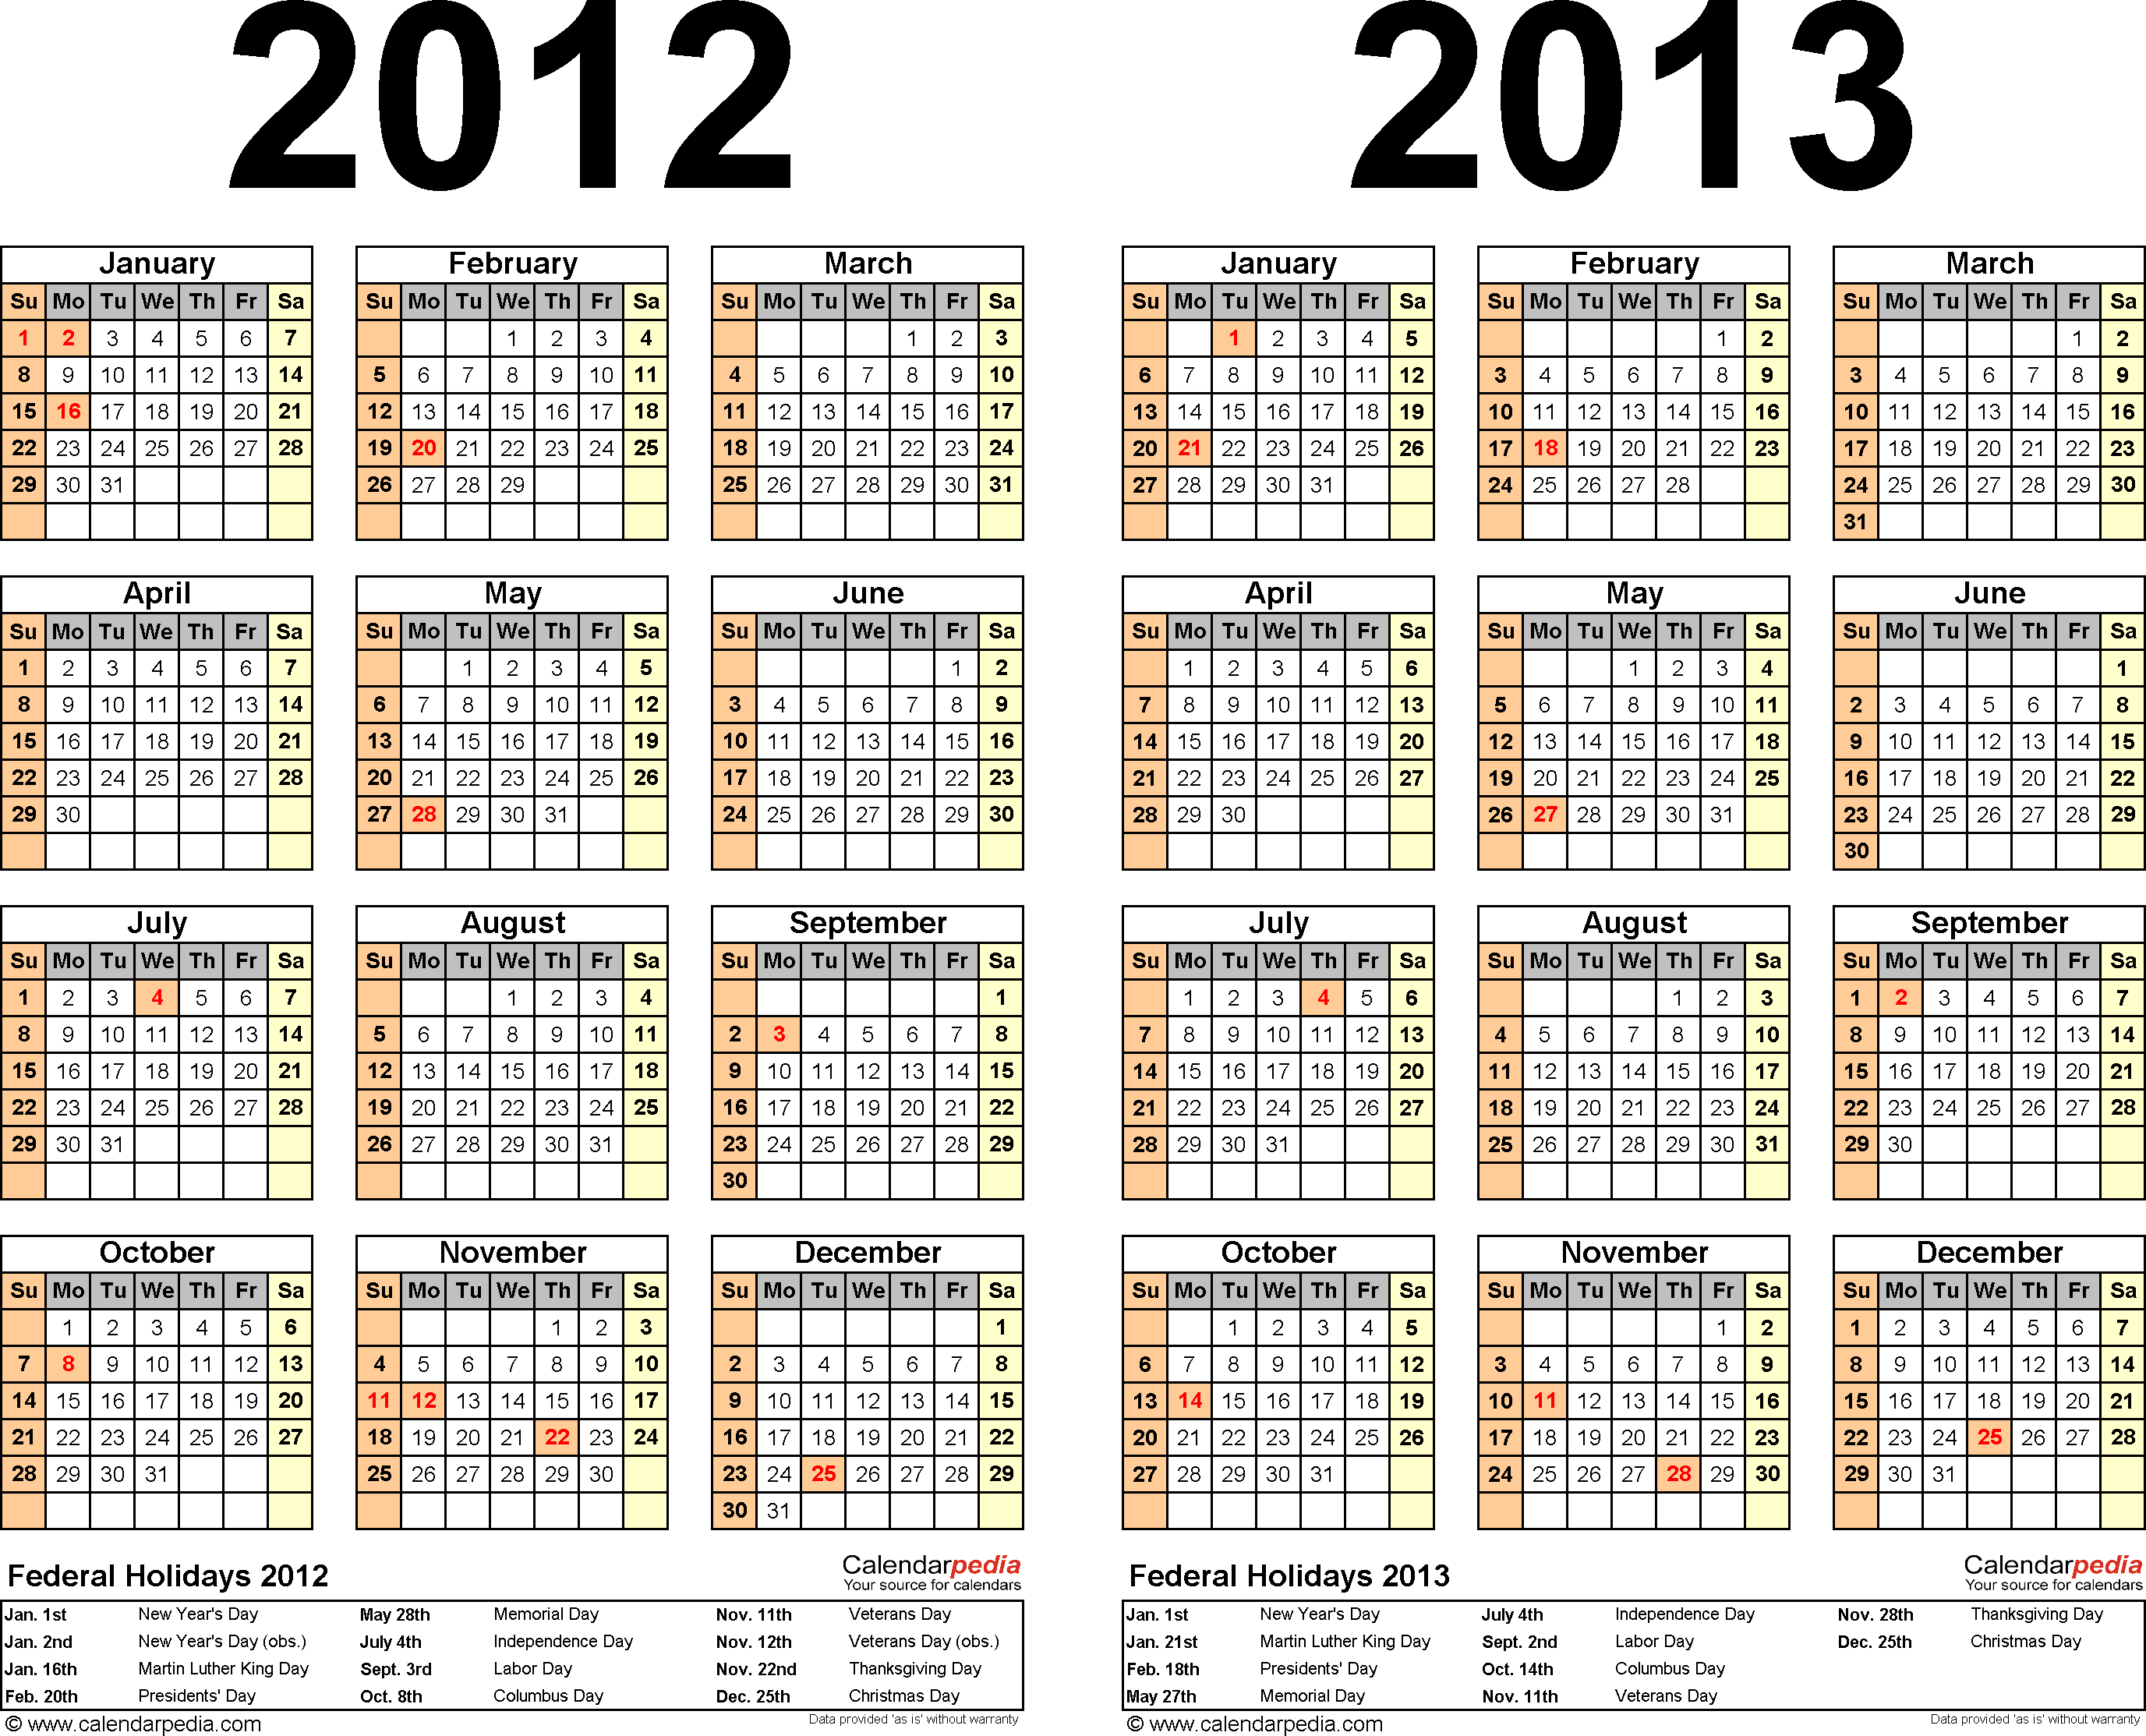 Template 2: PDF template for two year calendar 2012/2013 (landscape orientation, 1 page)